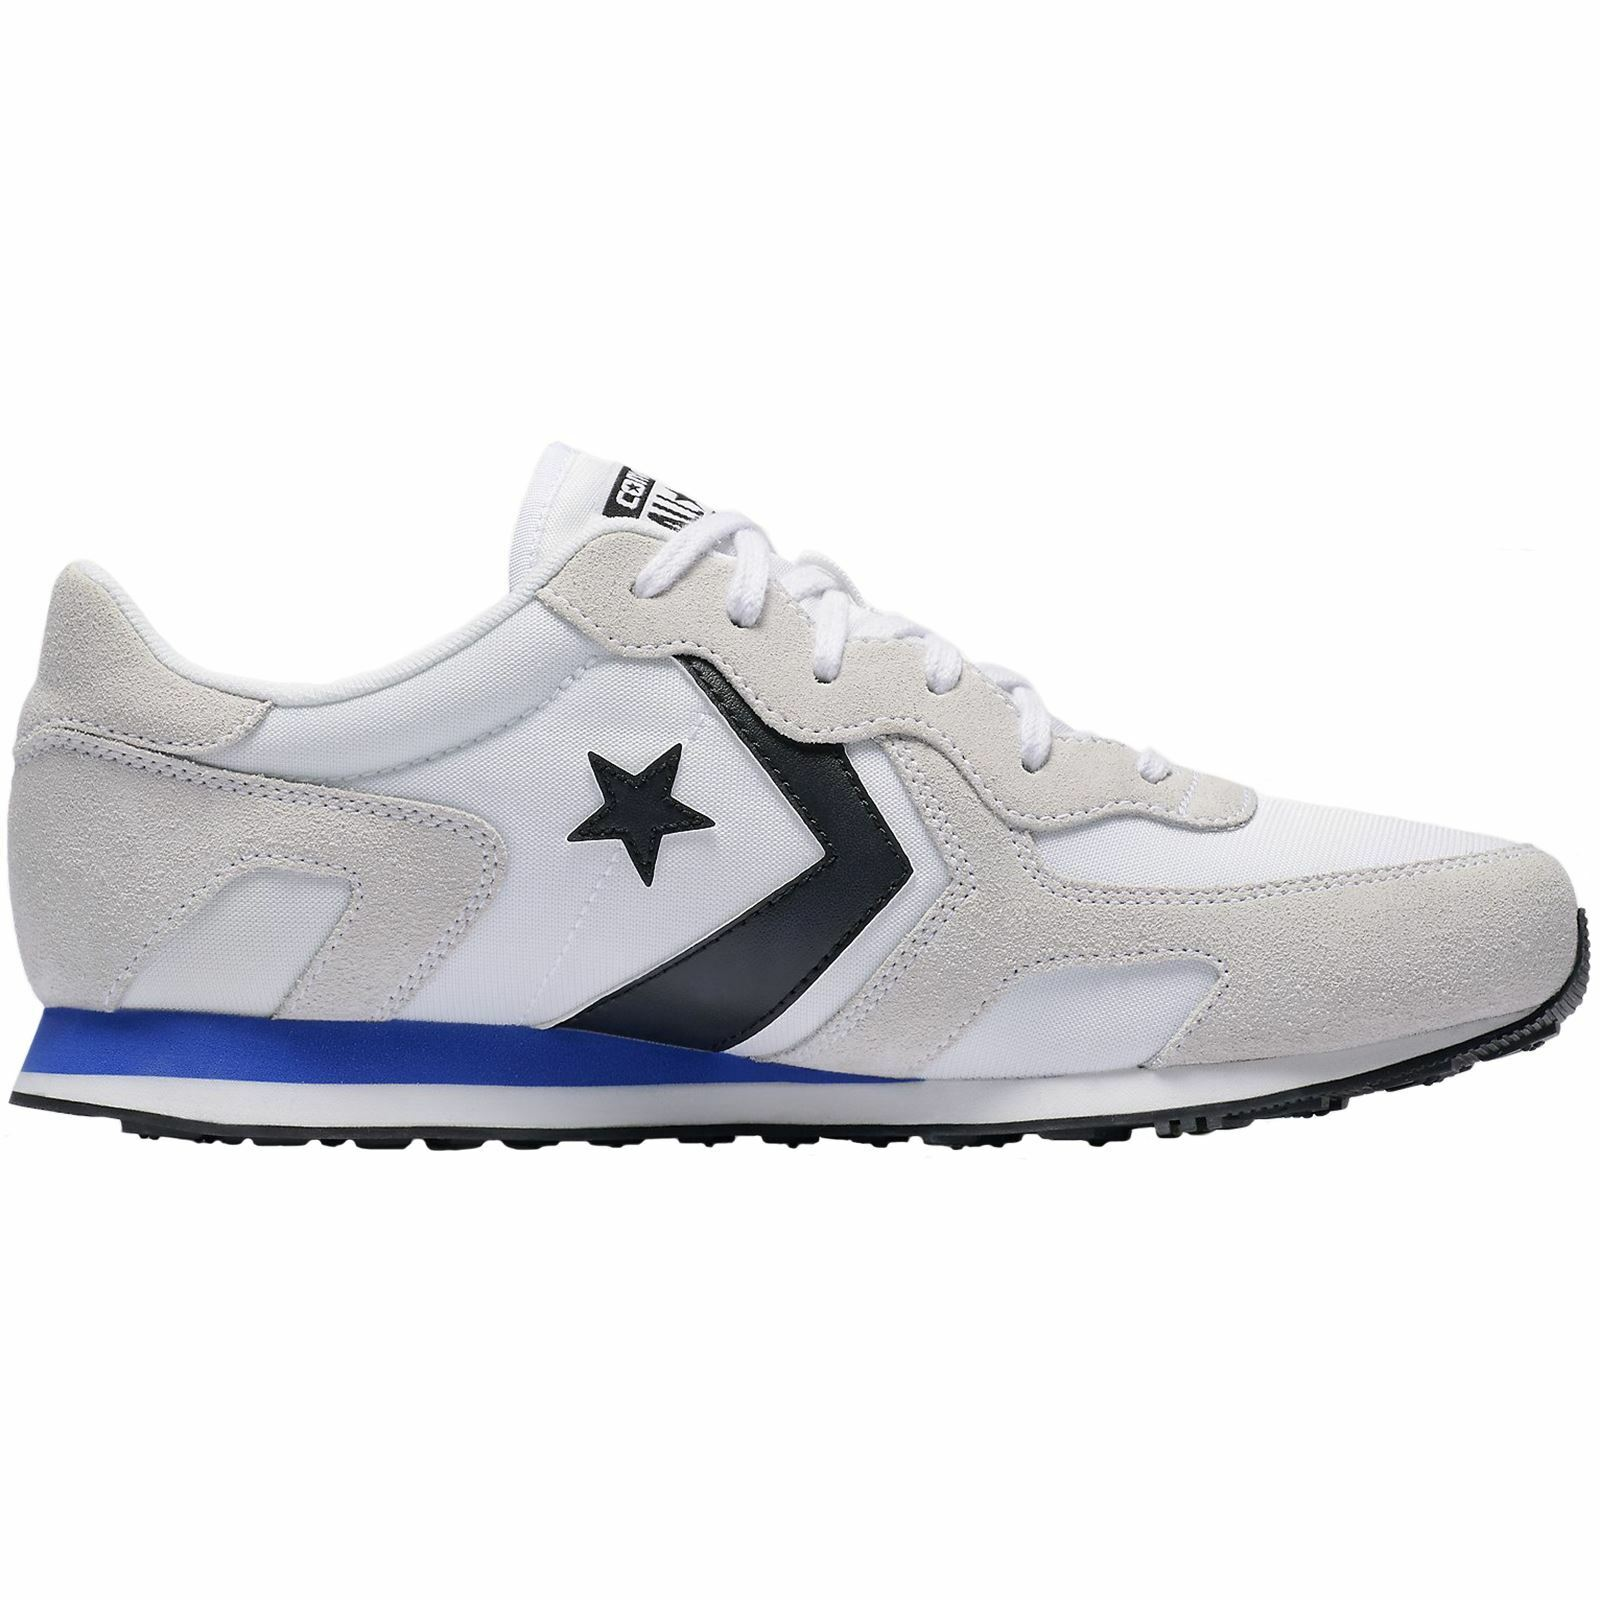 Converse Thunderbolt Ox White Hyper Royal Mens Suede Mesh Low-top Trainers